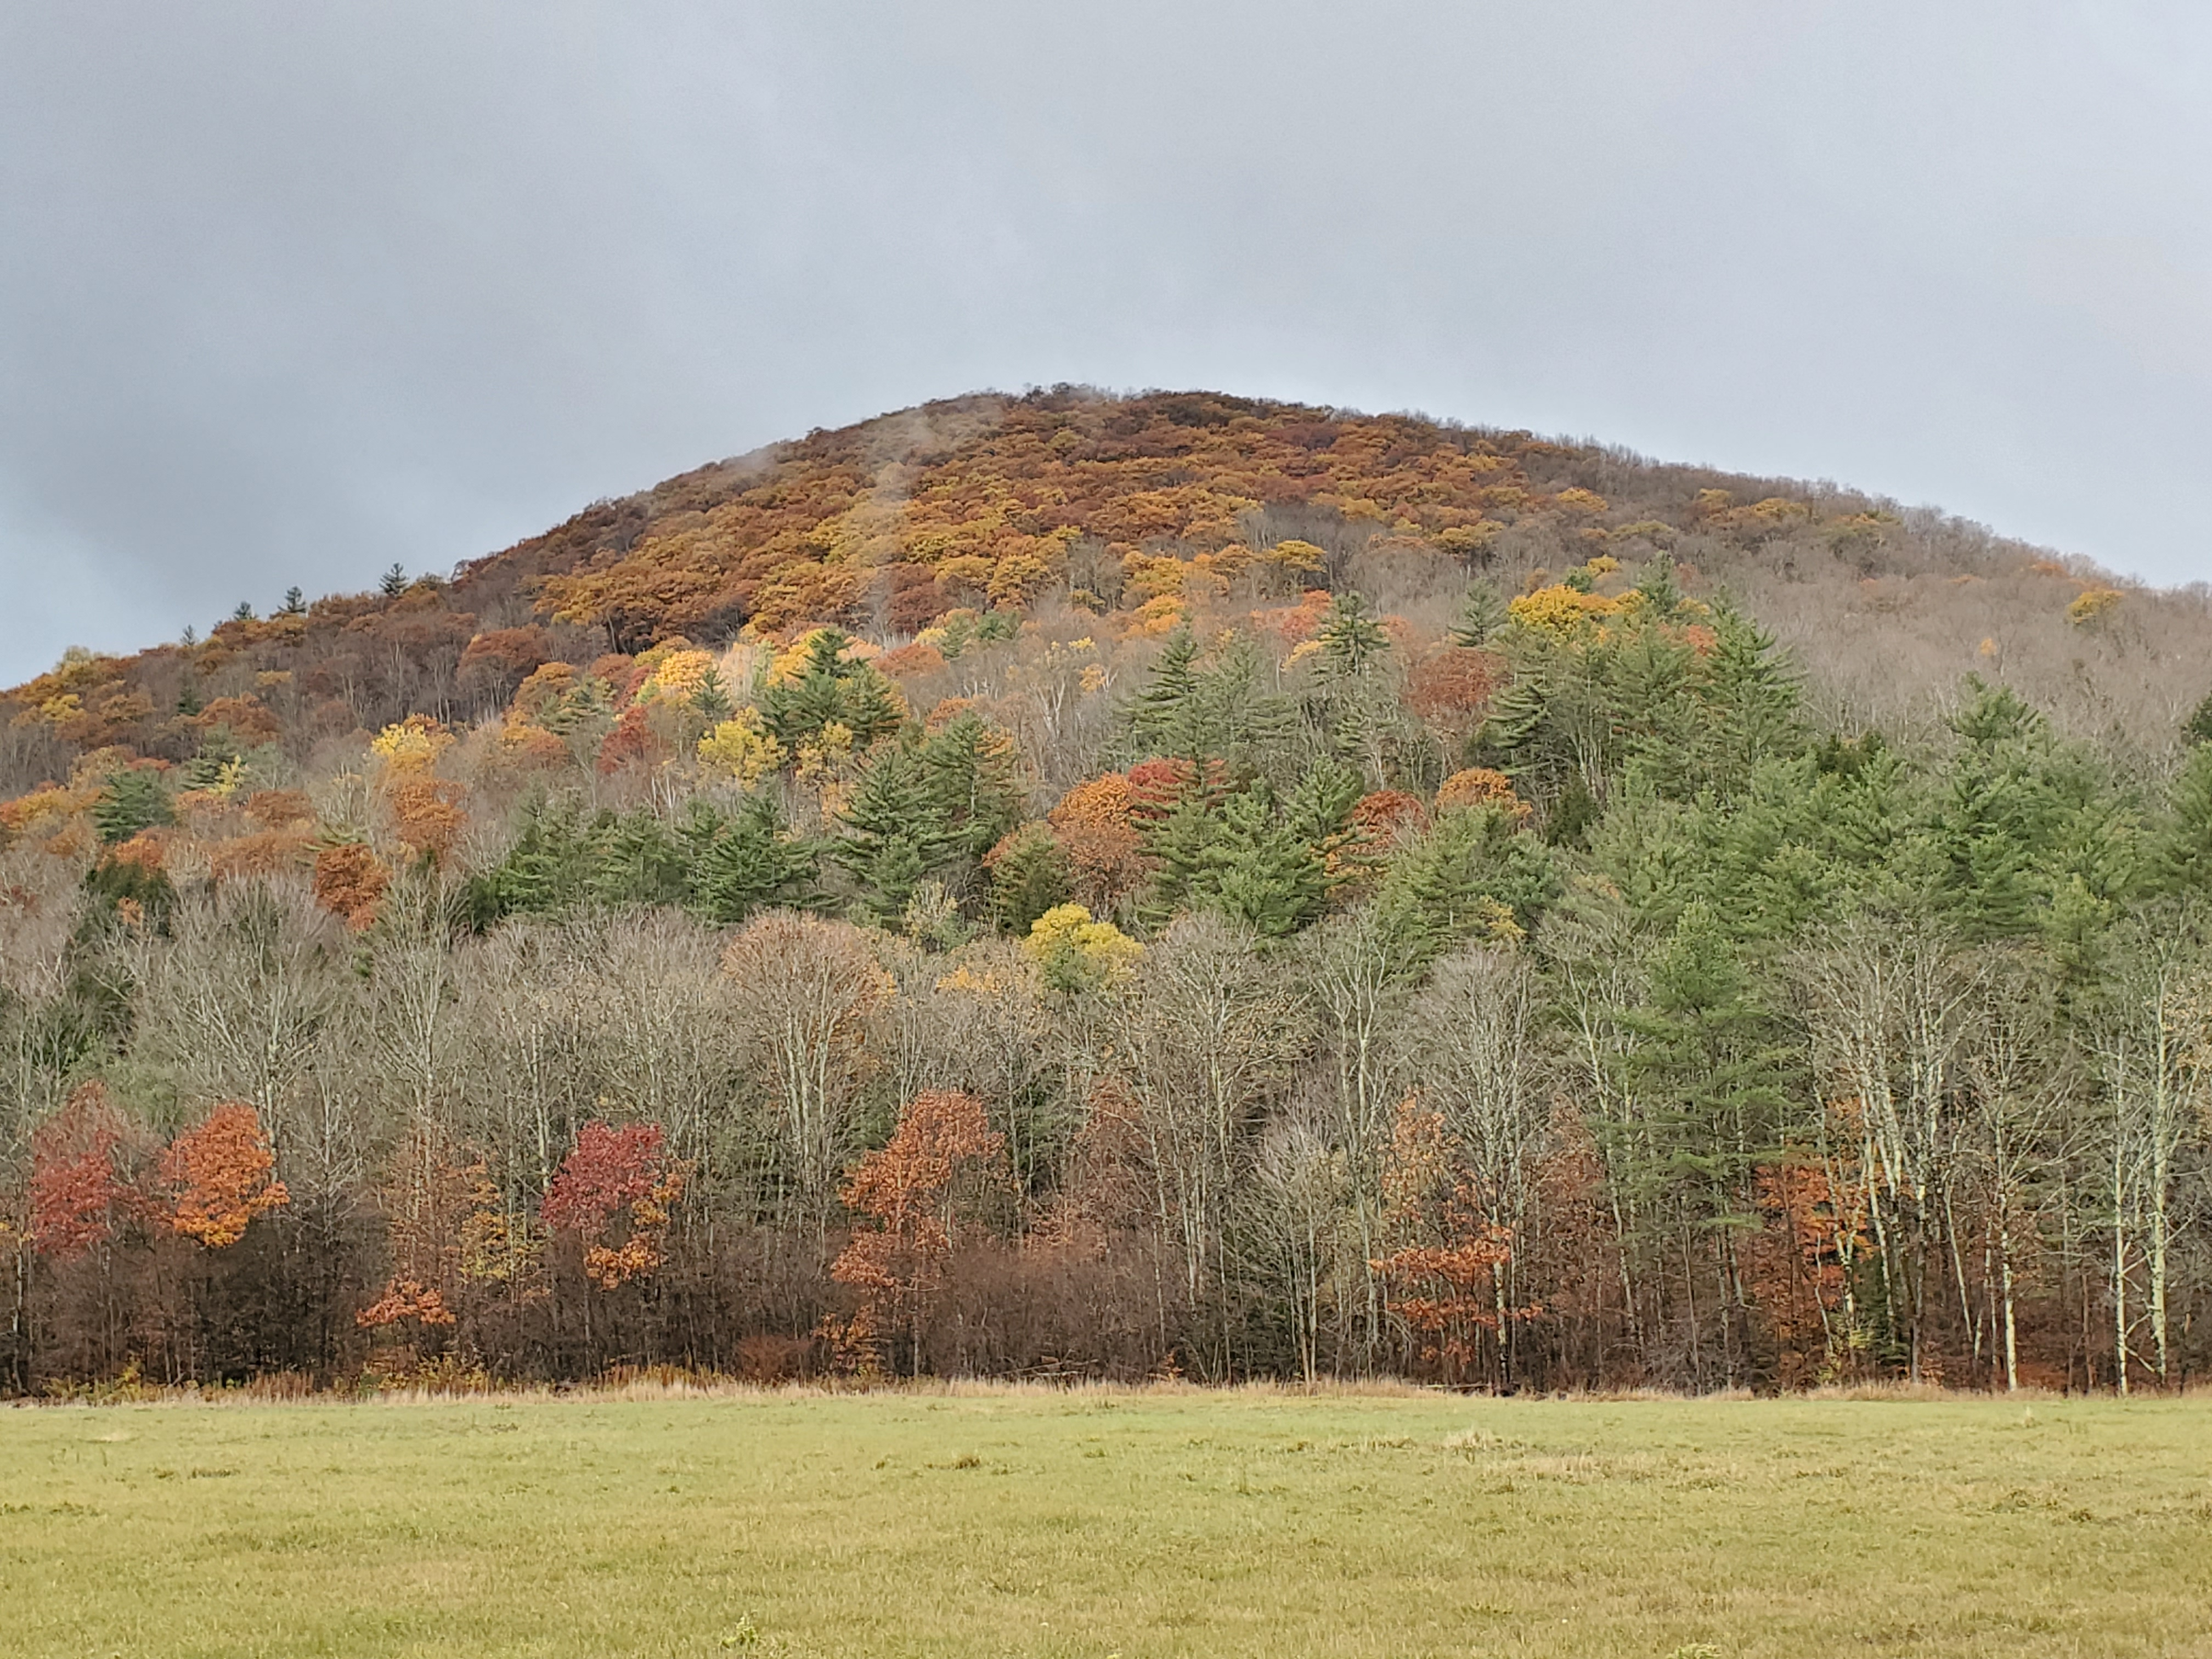 2019/10/23 - End of Foliage Season - by Renee-Marie Smith